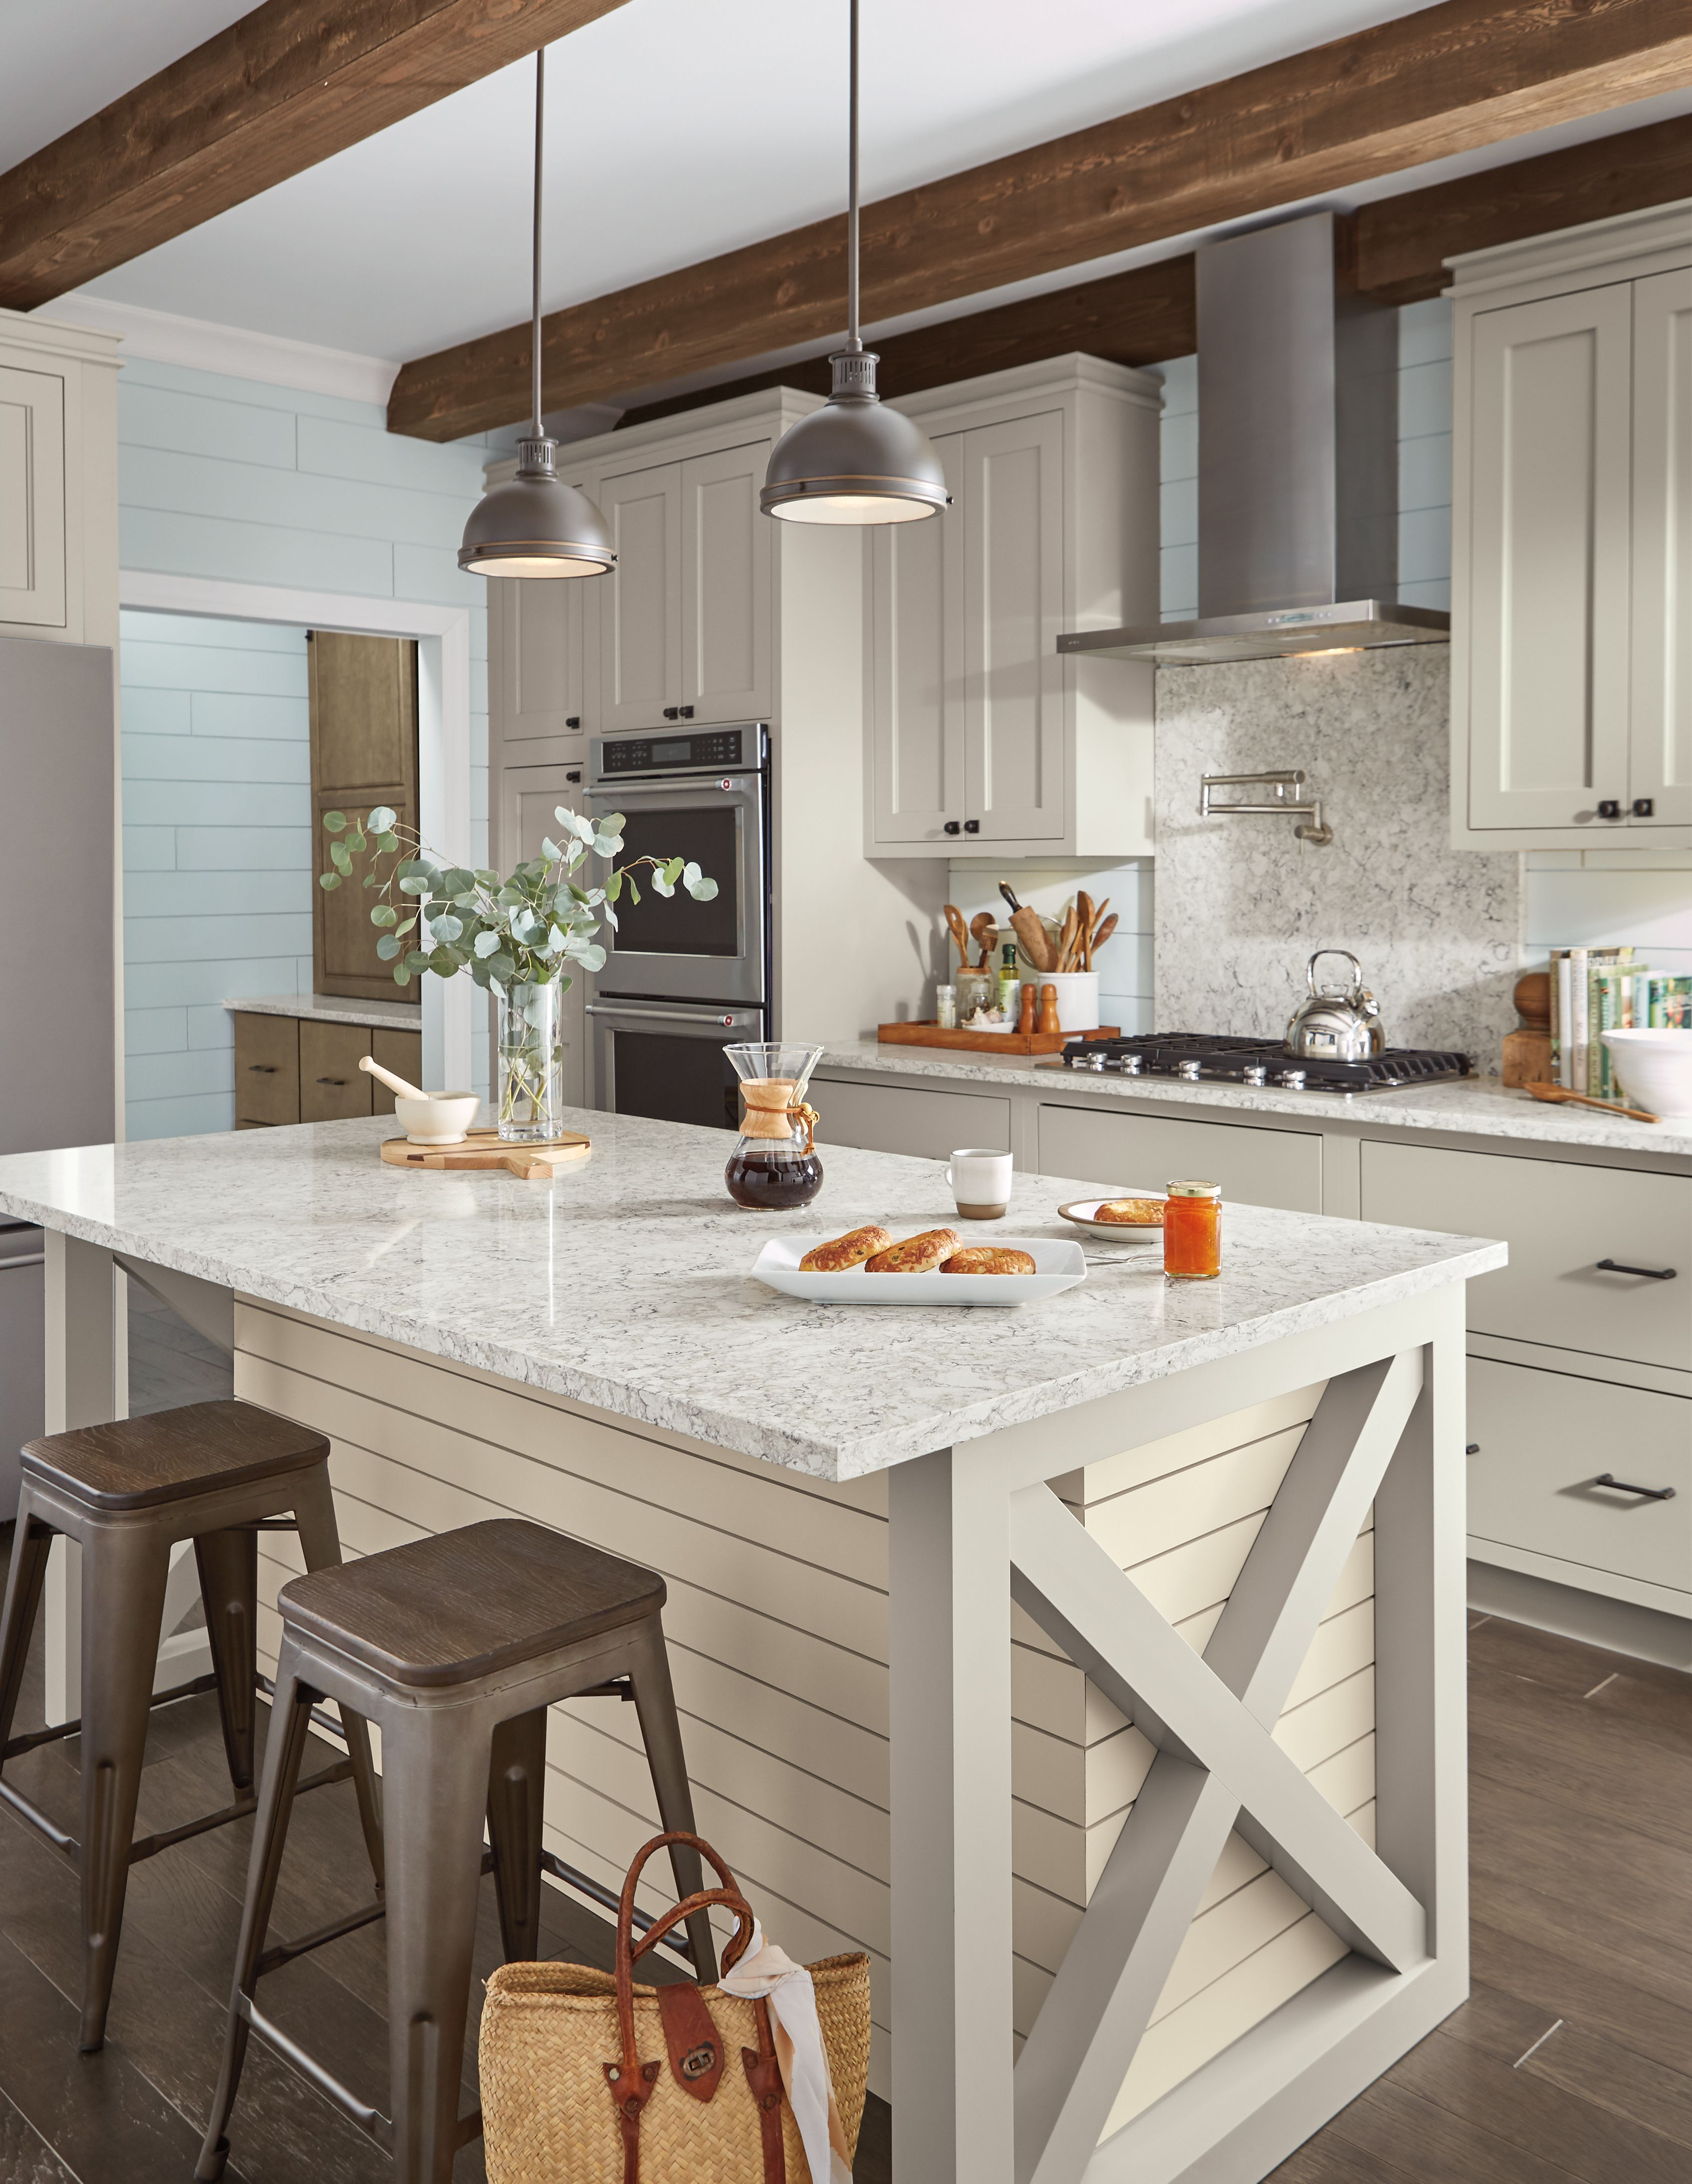 Rustic Meets Refined In This Farmhouse Kitchen Look Kitchengoals Dreamkitchen Farmhousekitchen Country House Interior Rustic House Kitchen Design Decor